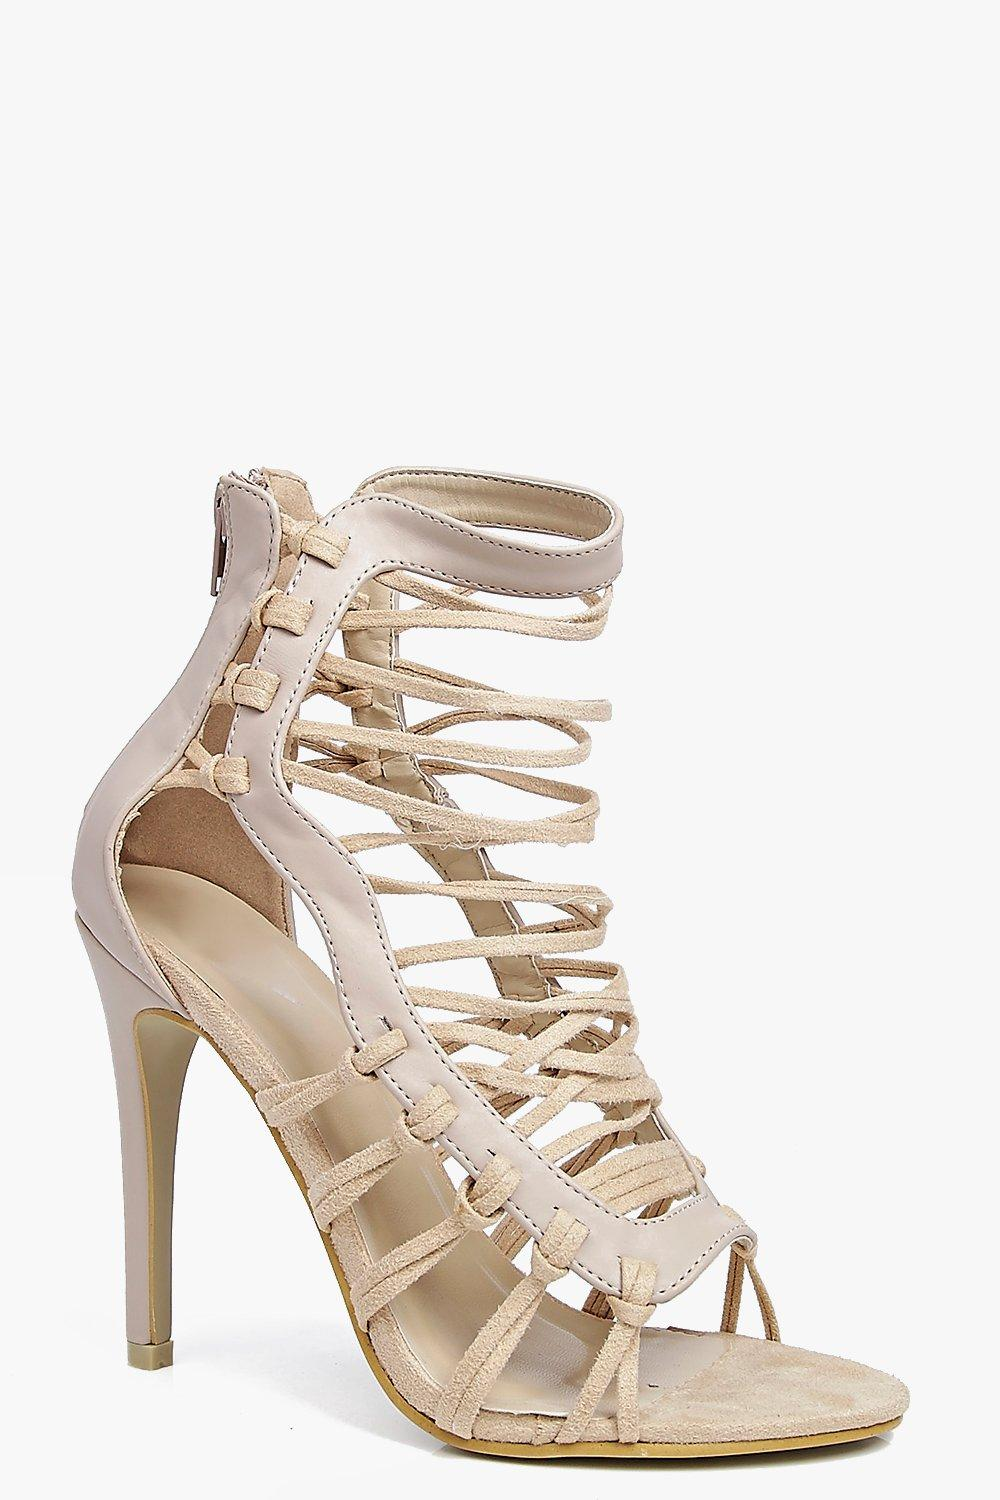 Multi Strap Caged Stilletto cream